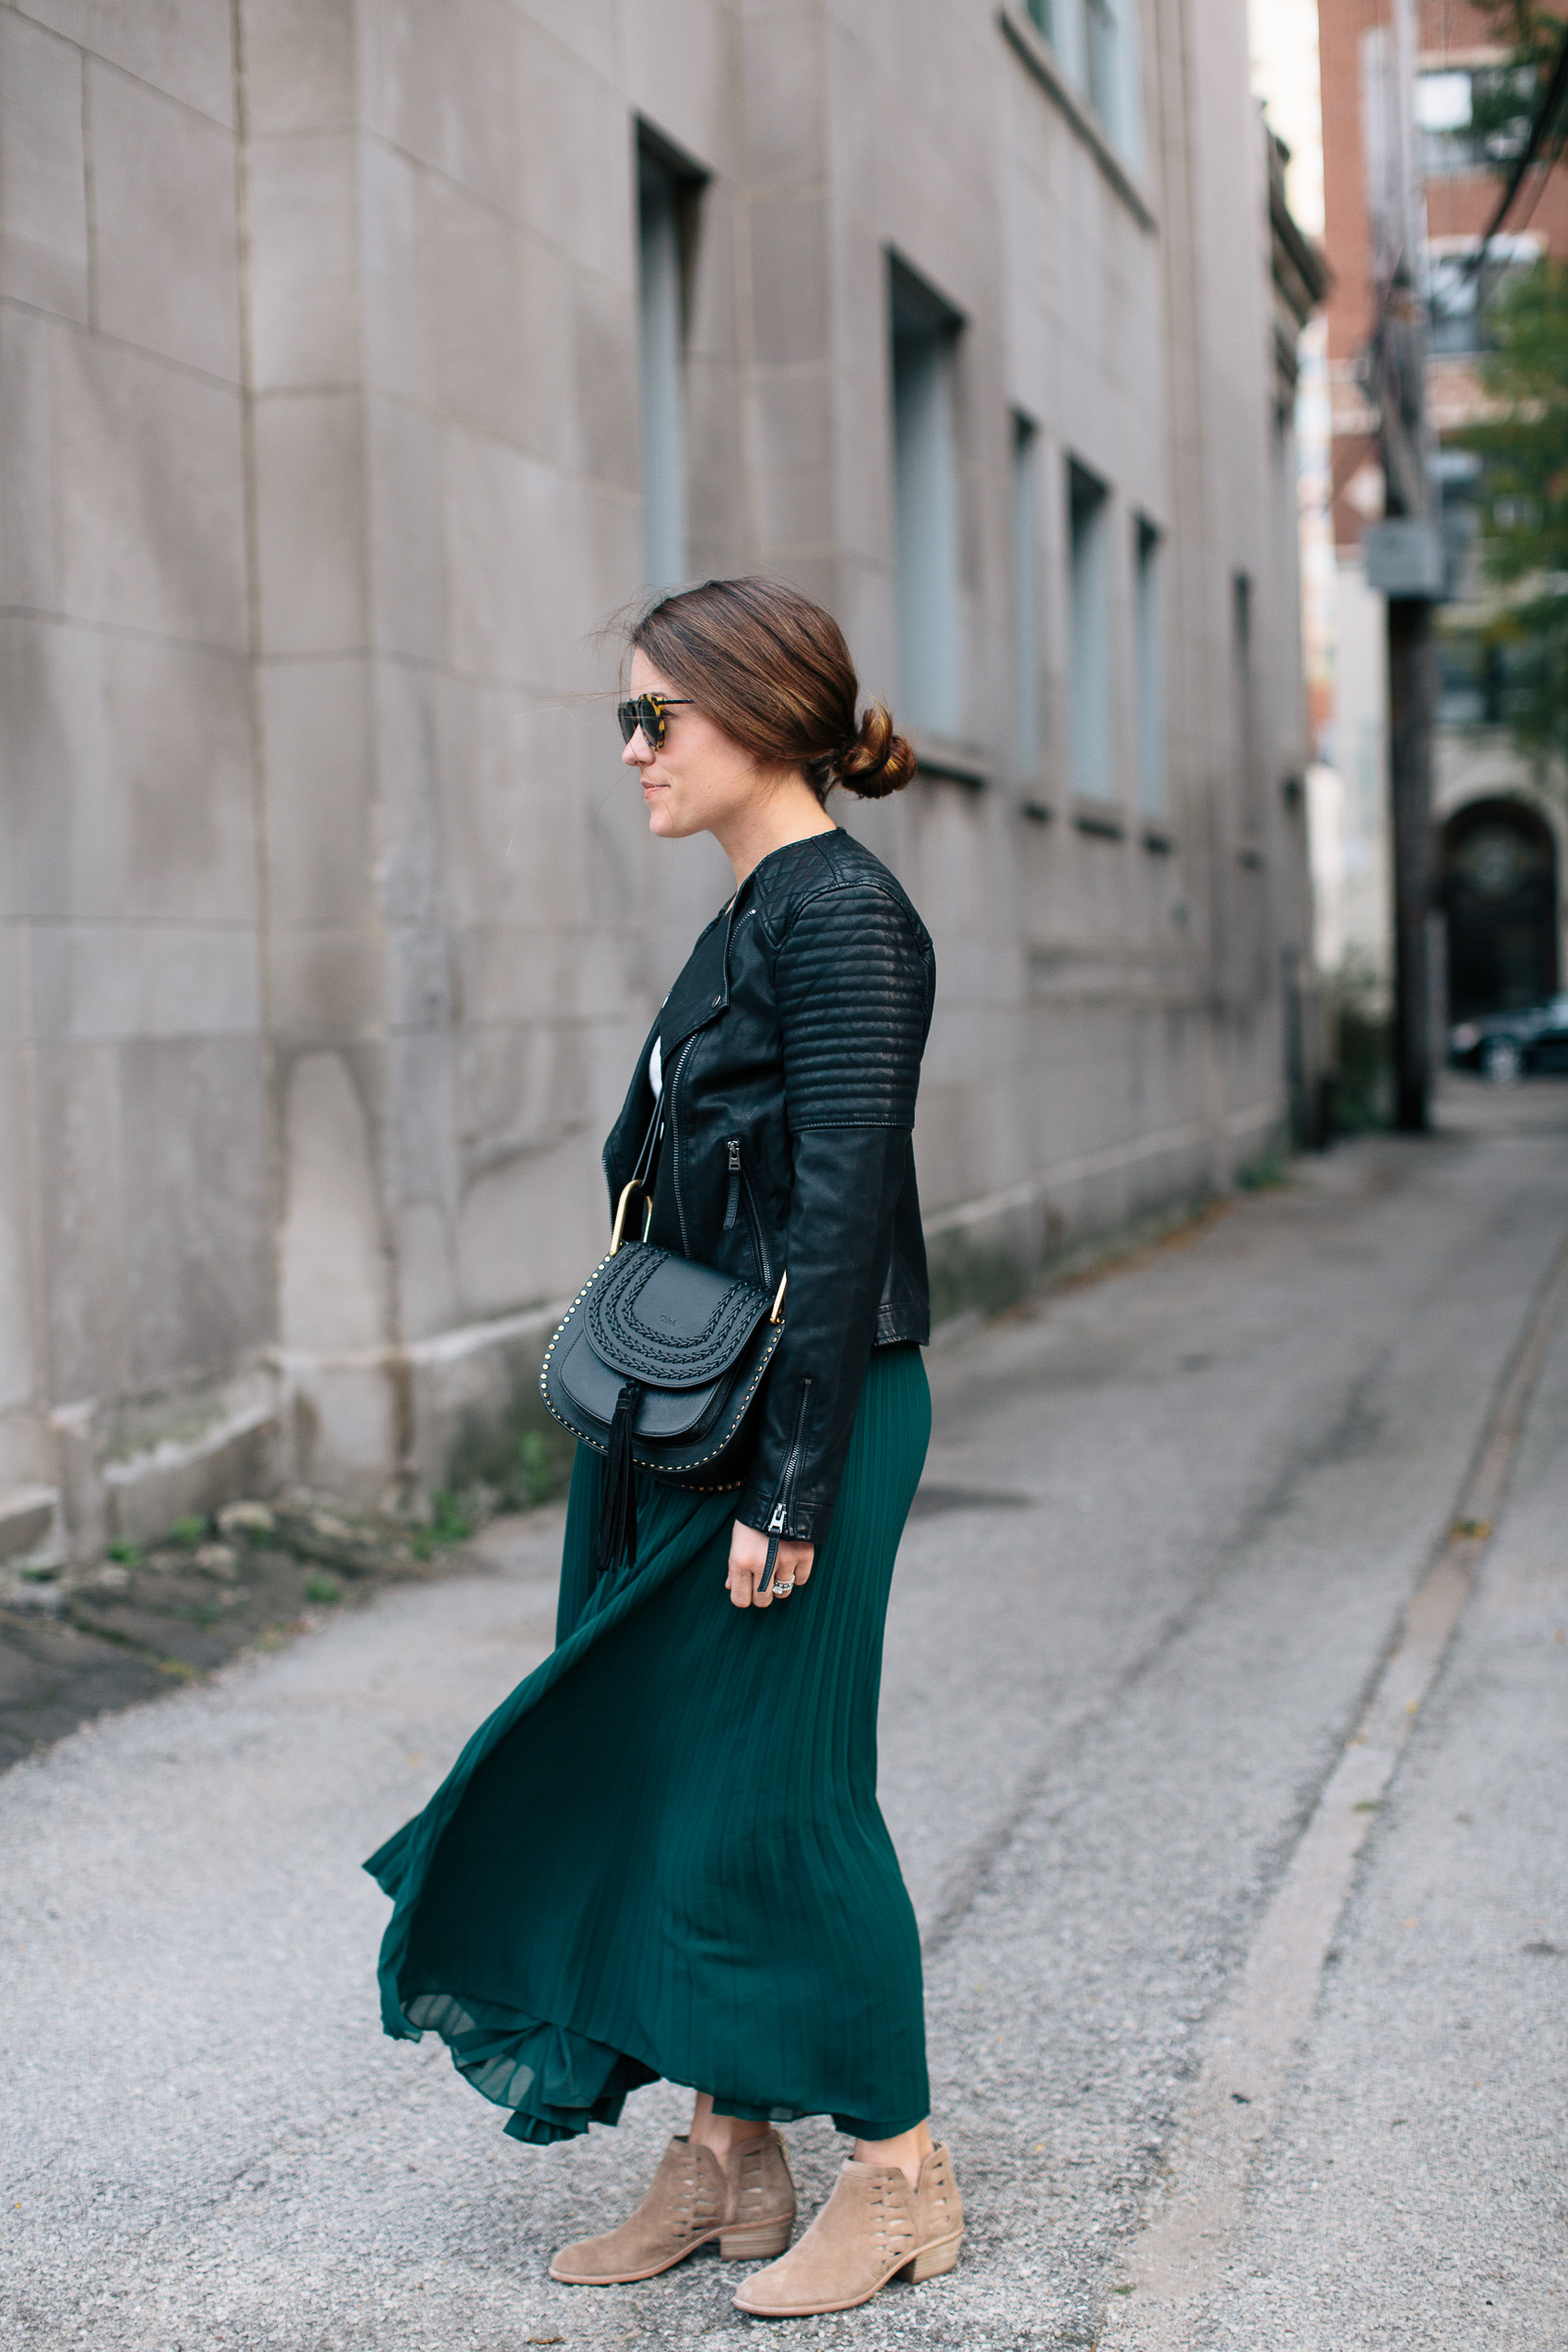 how-to-wear-a-maxi-skirt-into-fall-1-of-18